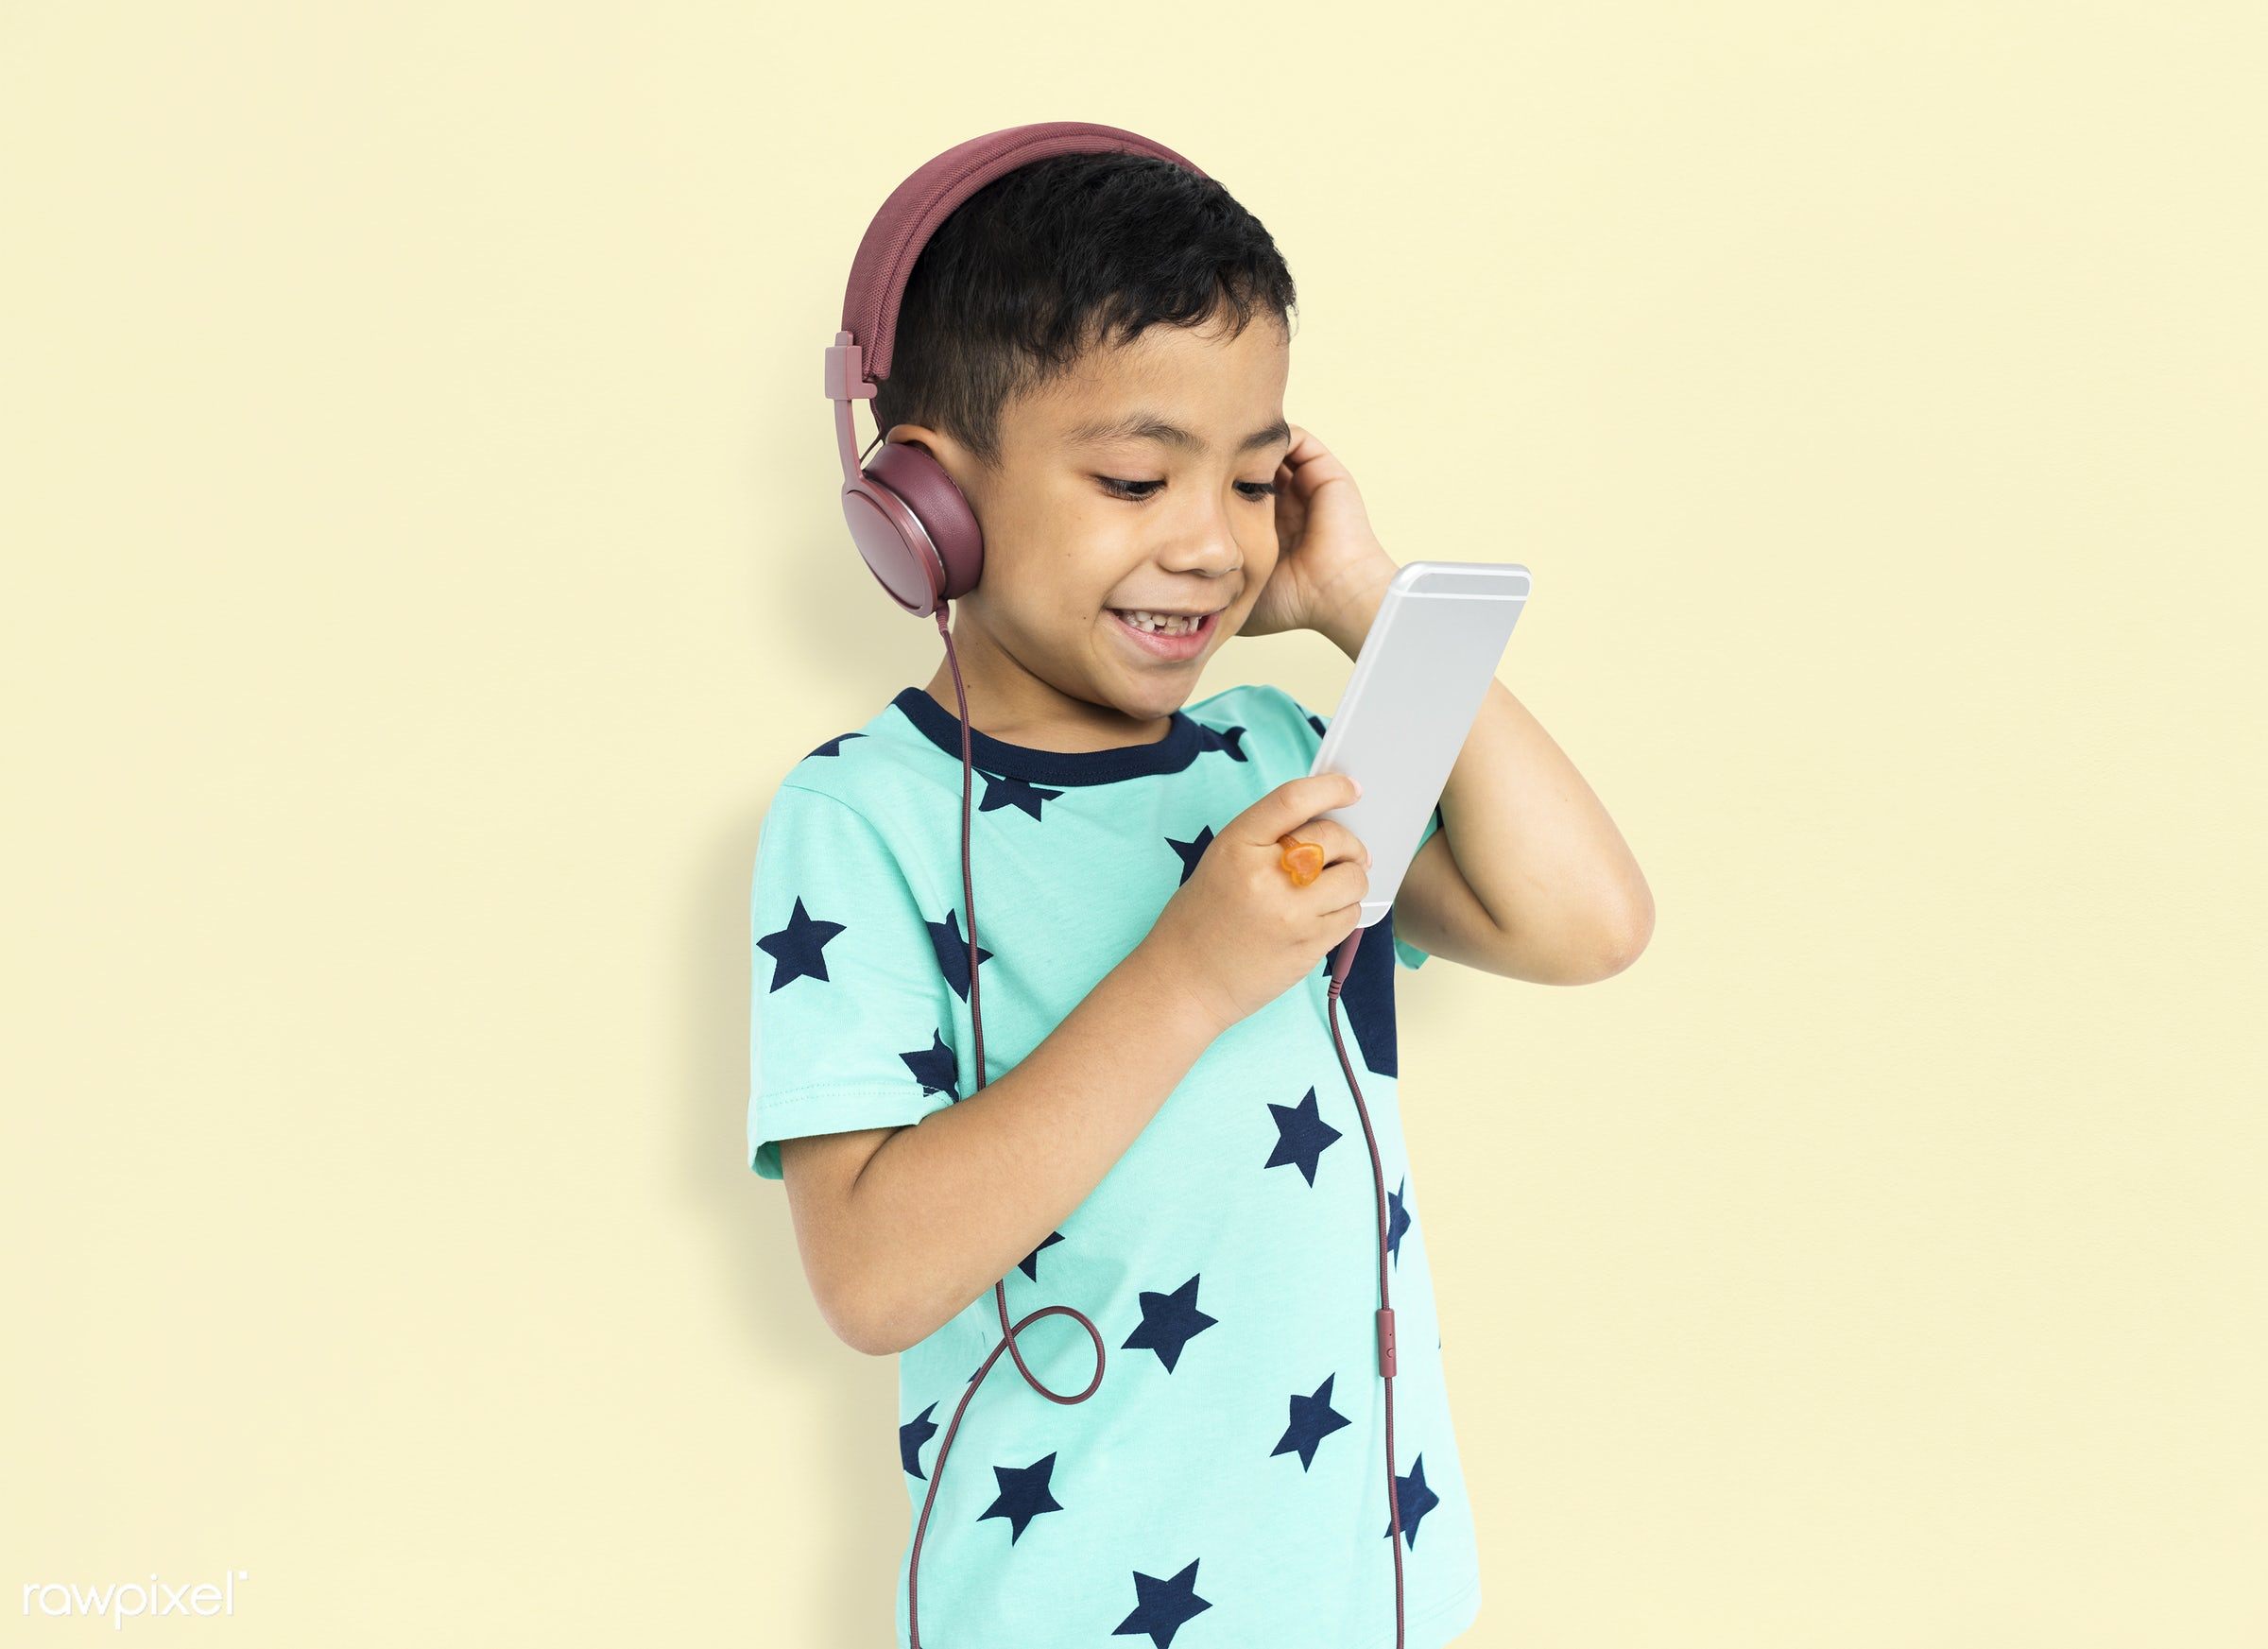 studio, expression, using, person, technology, little, people, kid, childhood, smart phone, cheerful, smiling, isolated,...